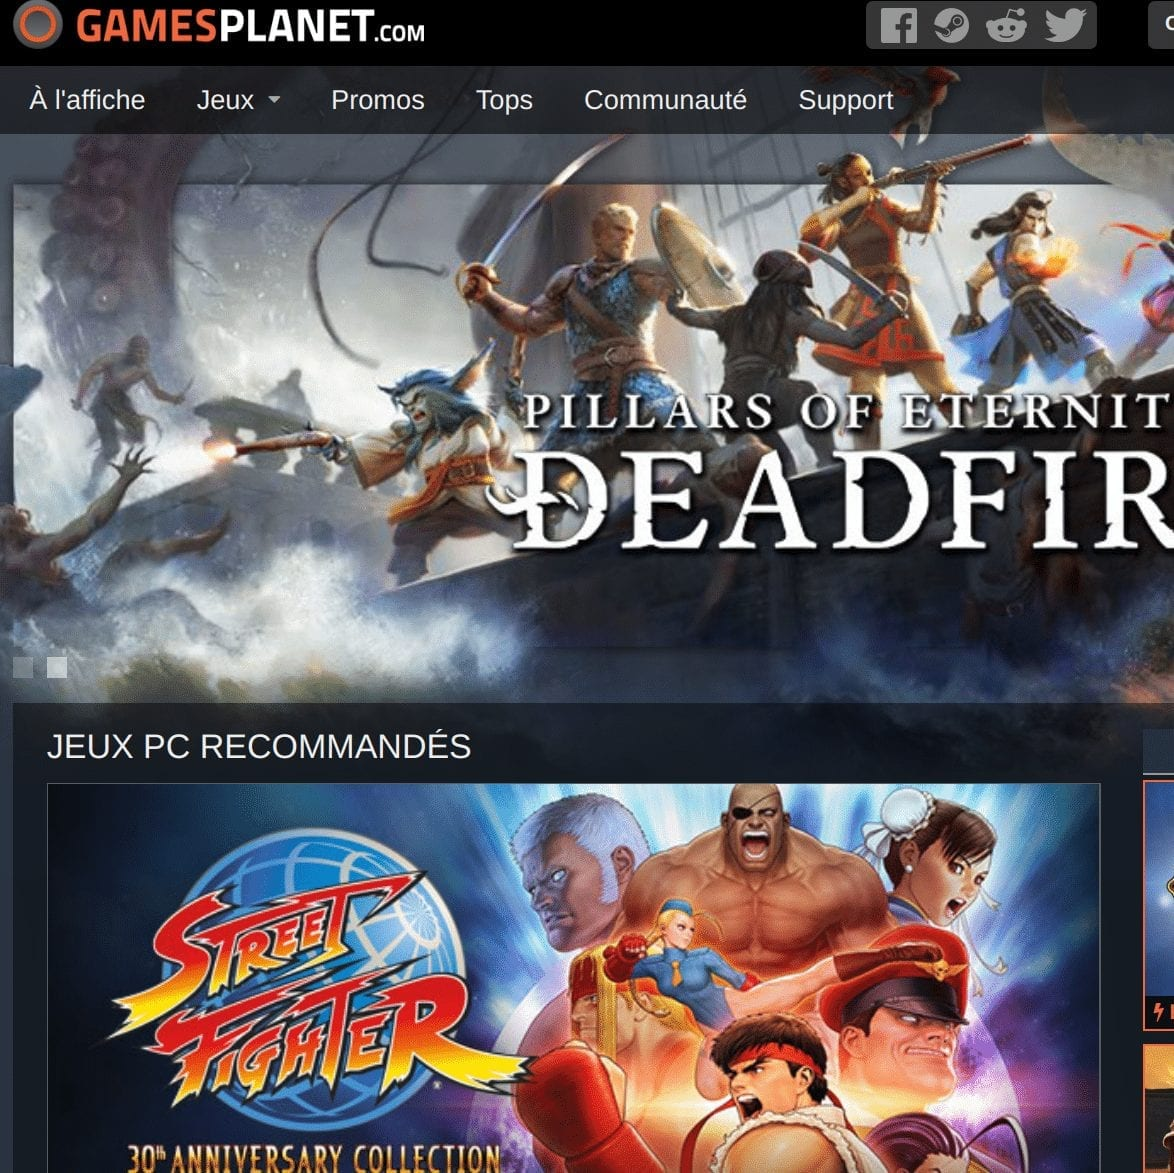 Games Planet